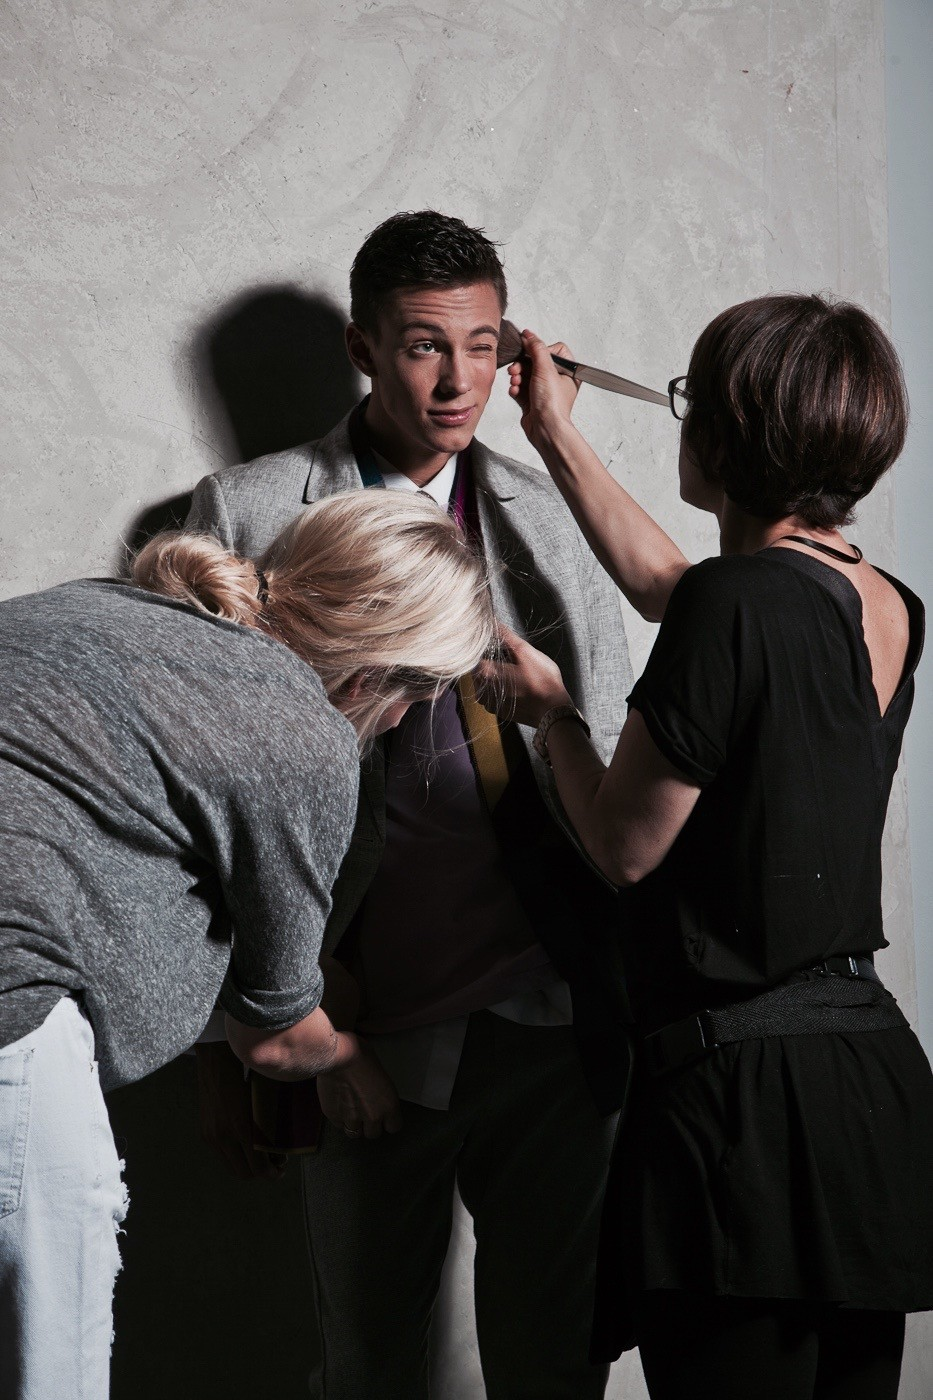 Making of, Modeshooting, Coat Hooked, online Magizin Veröffentlichung